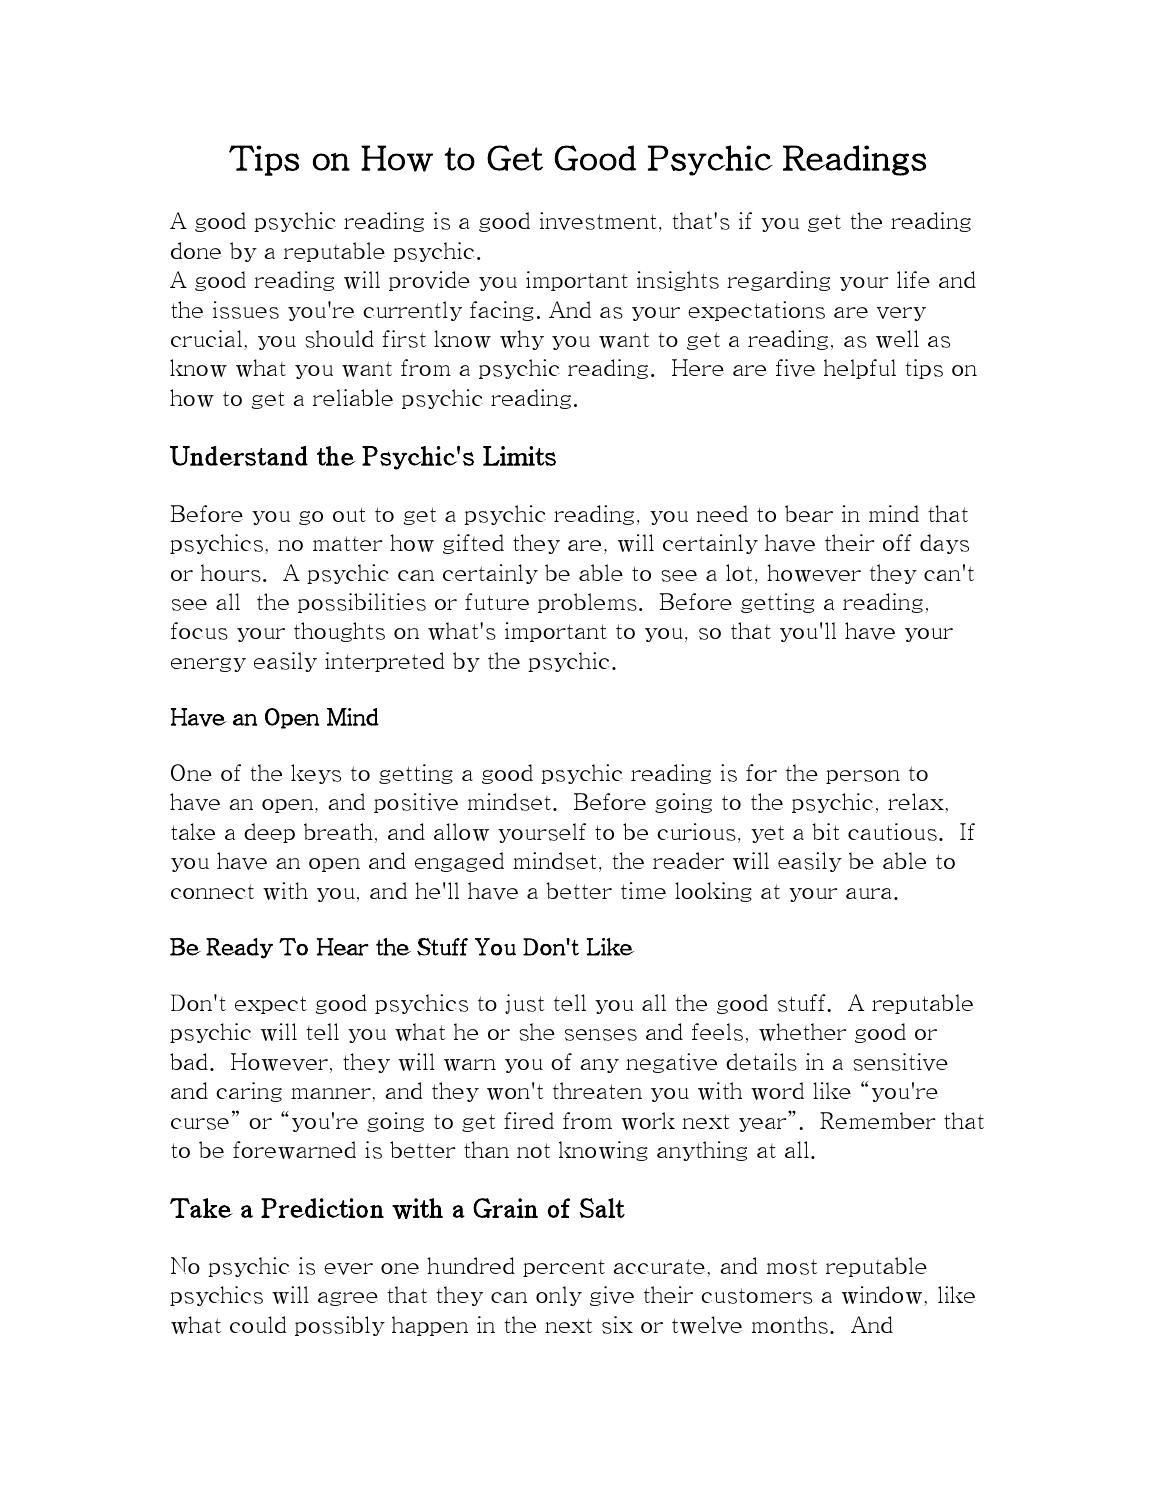 Tips on how to get good psychic readings by webbnix - issuu